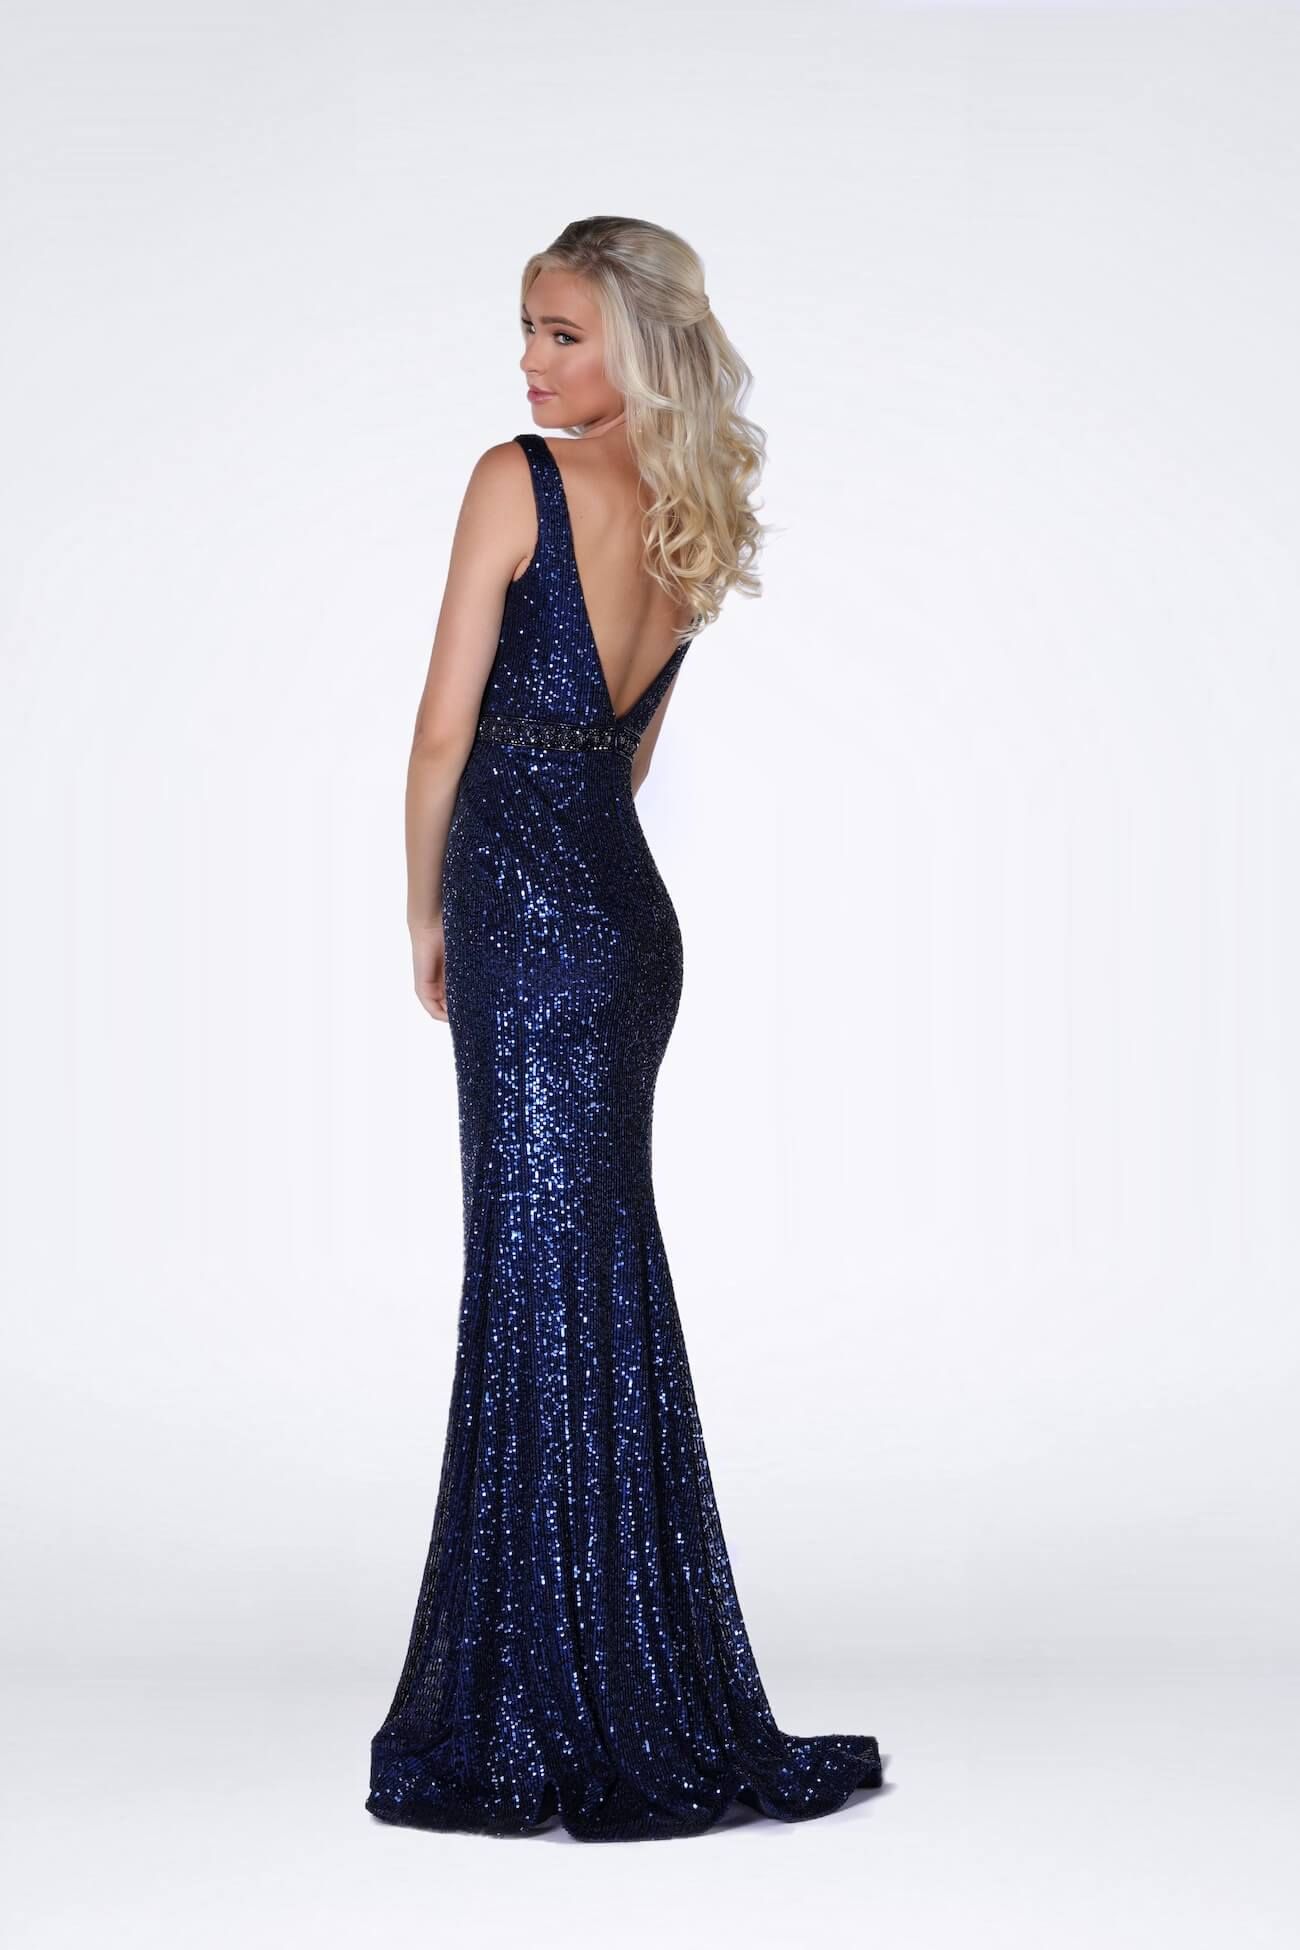 Vienna Blue Size 12 Navy Backless Mermaid Dress on Queenly